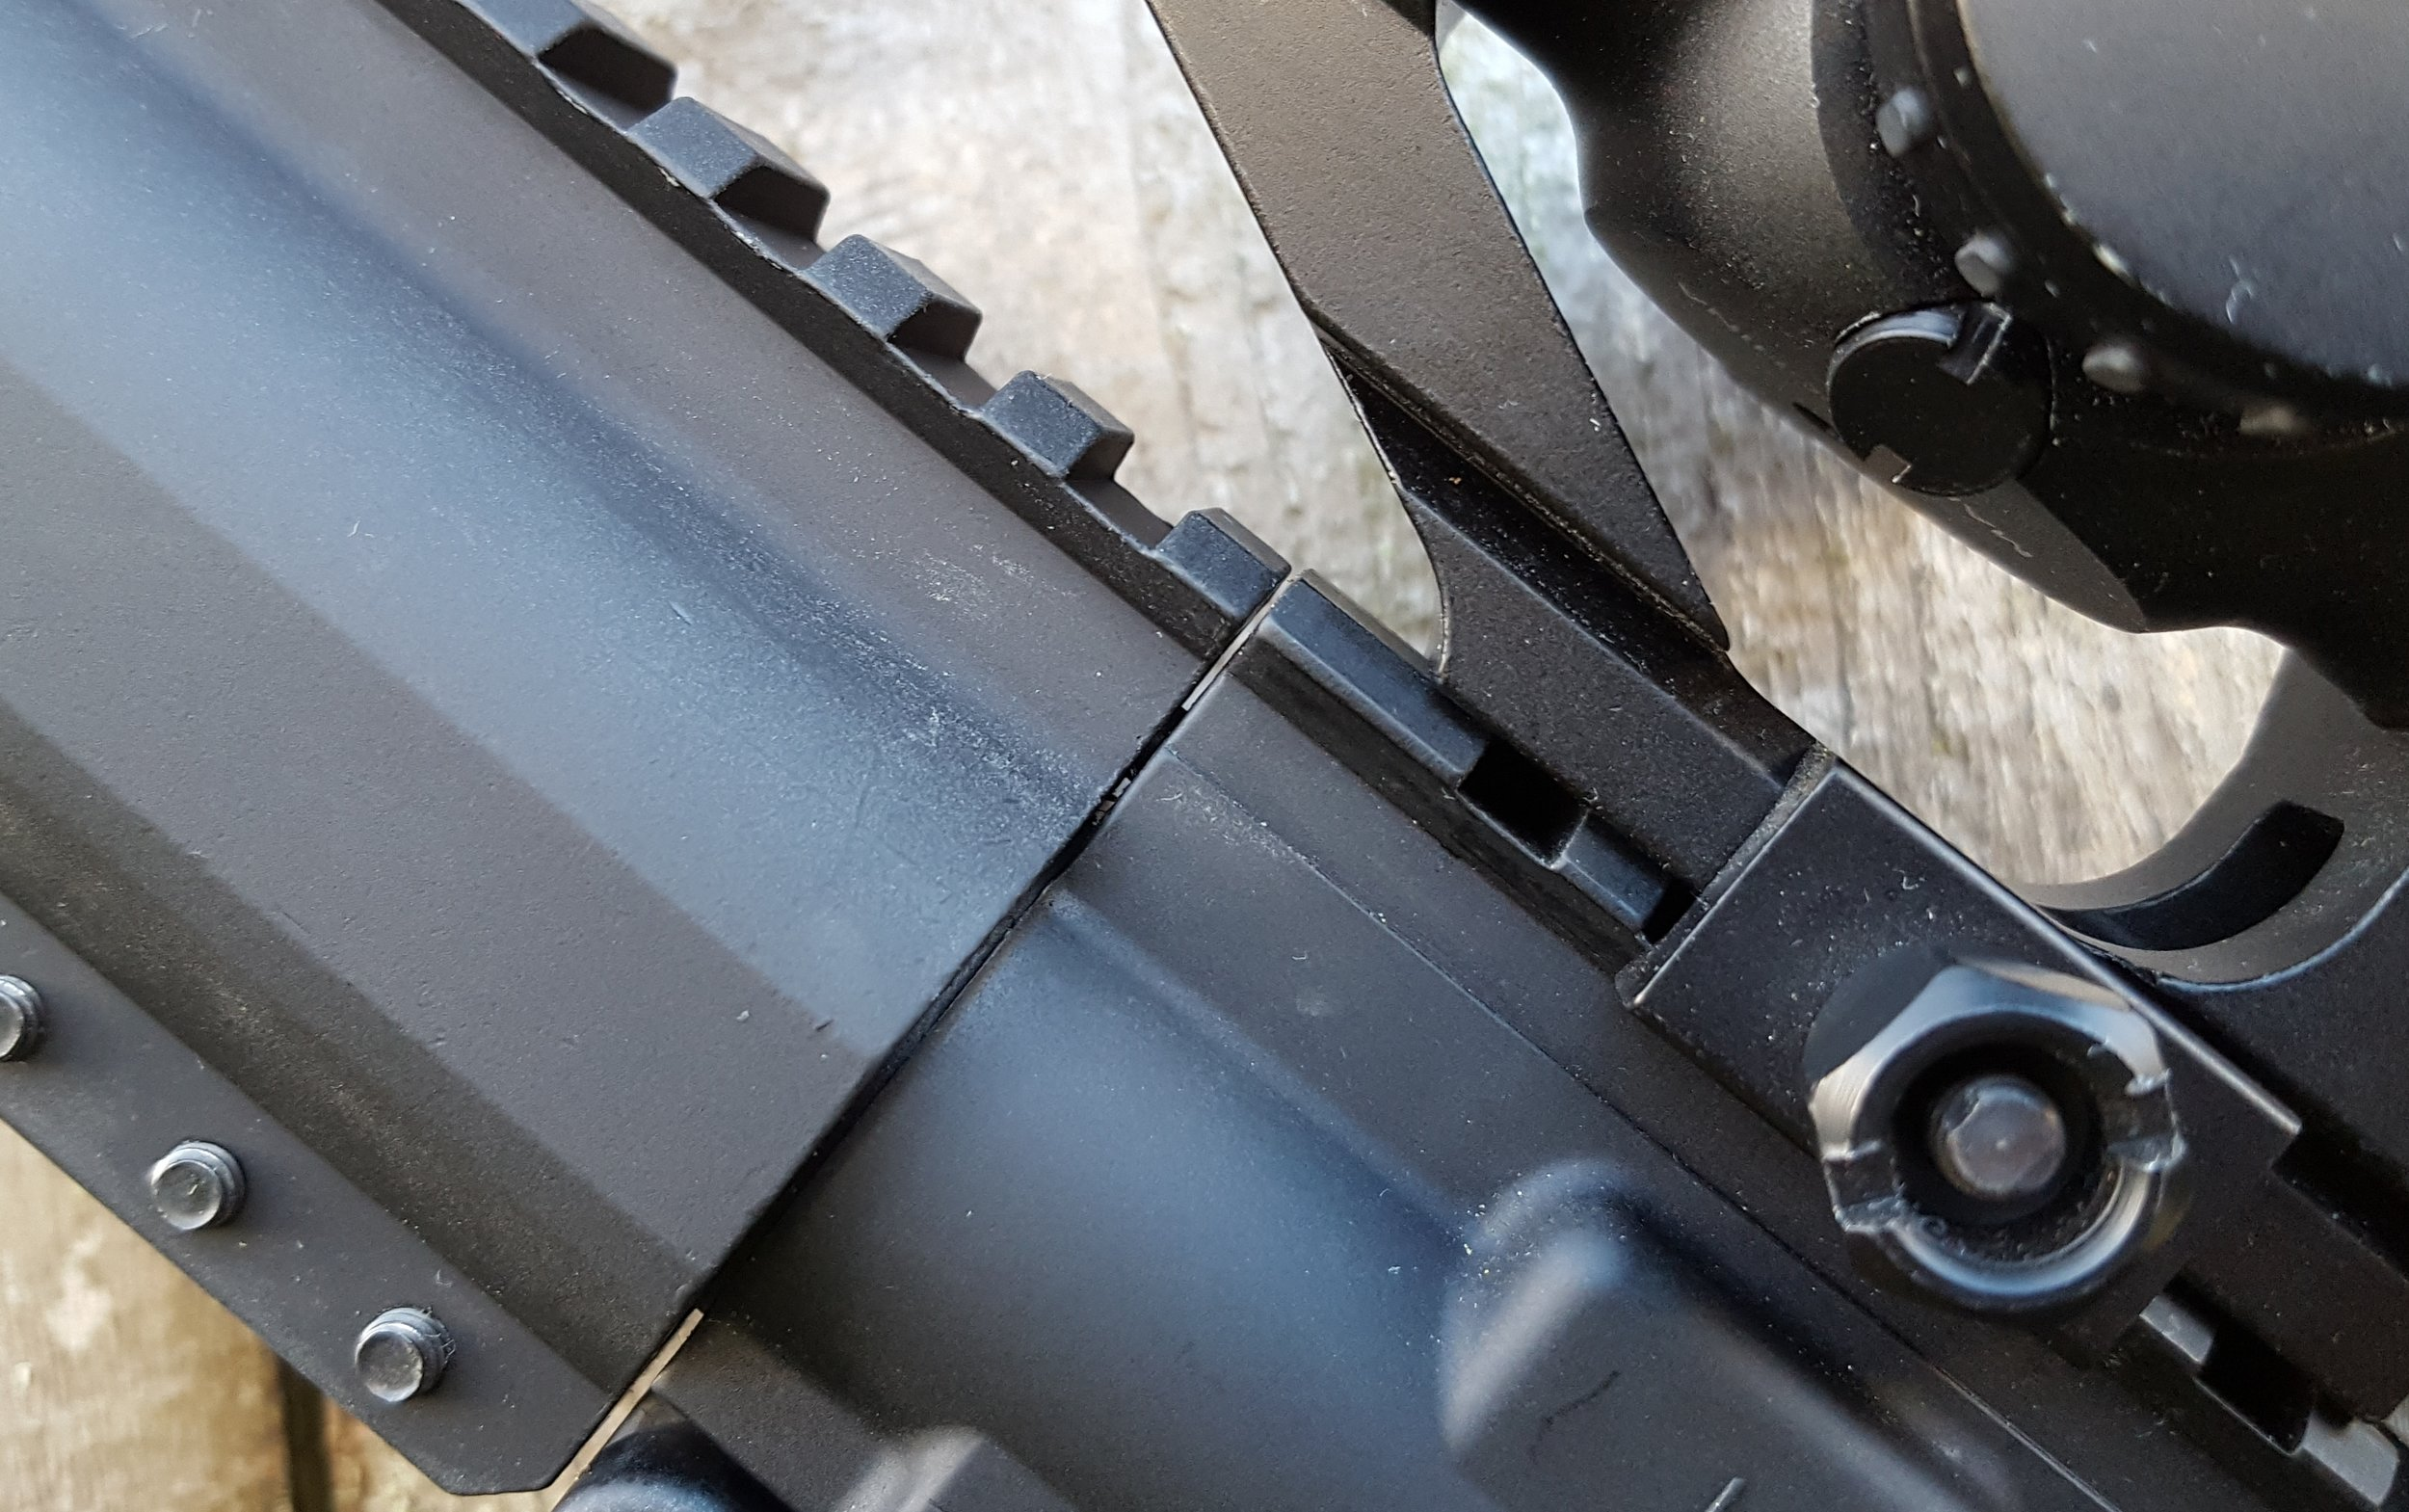 You can see the slight misalignment of the rail to the receiver